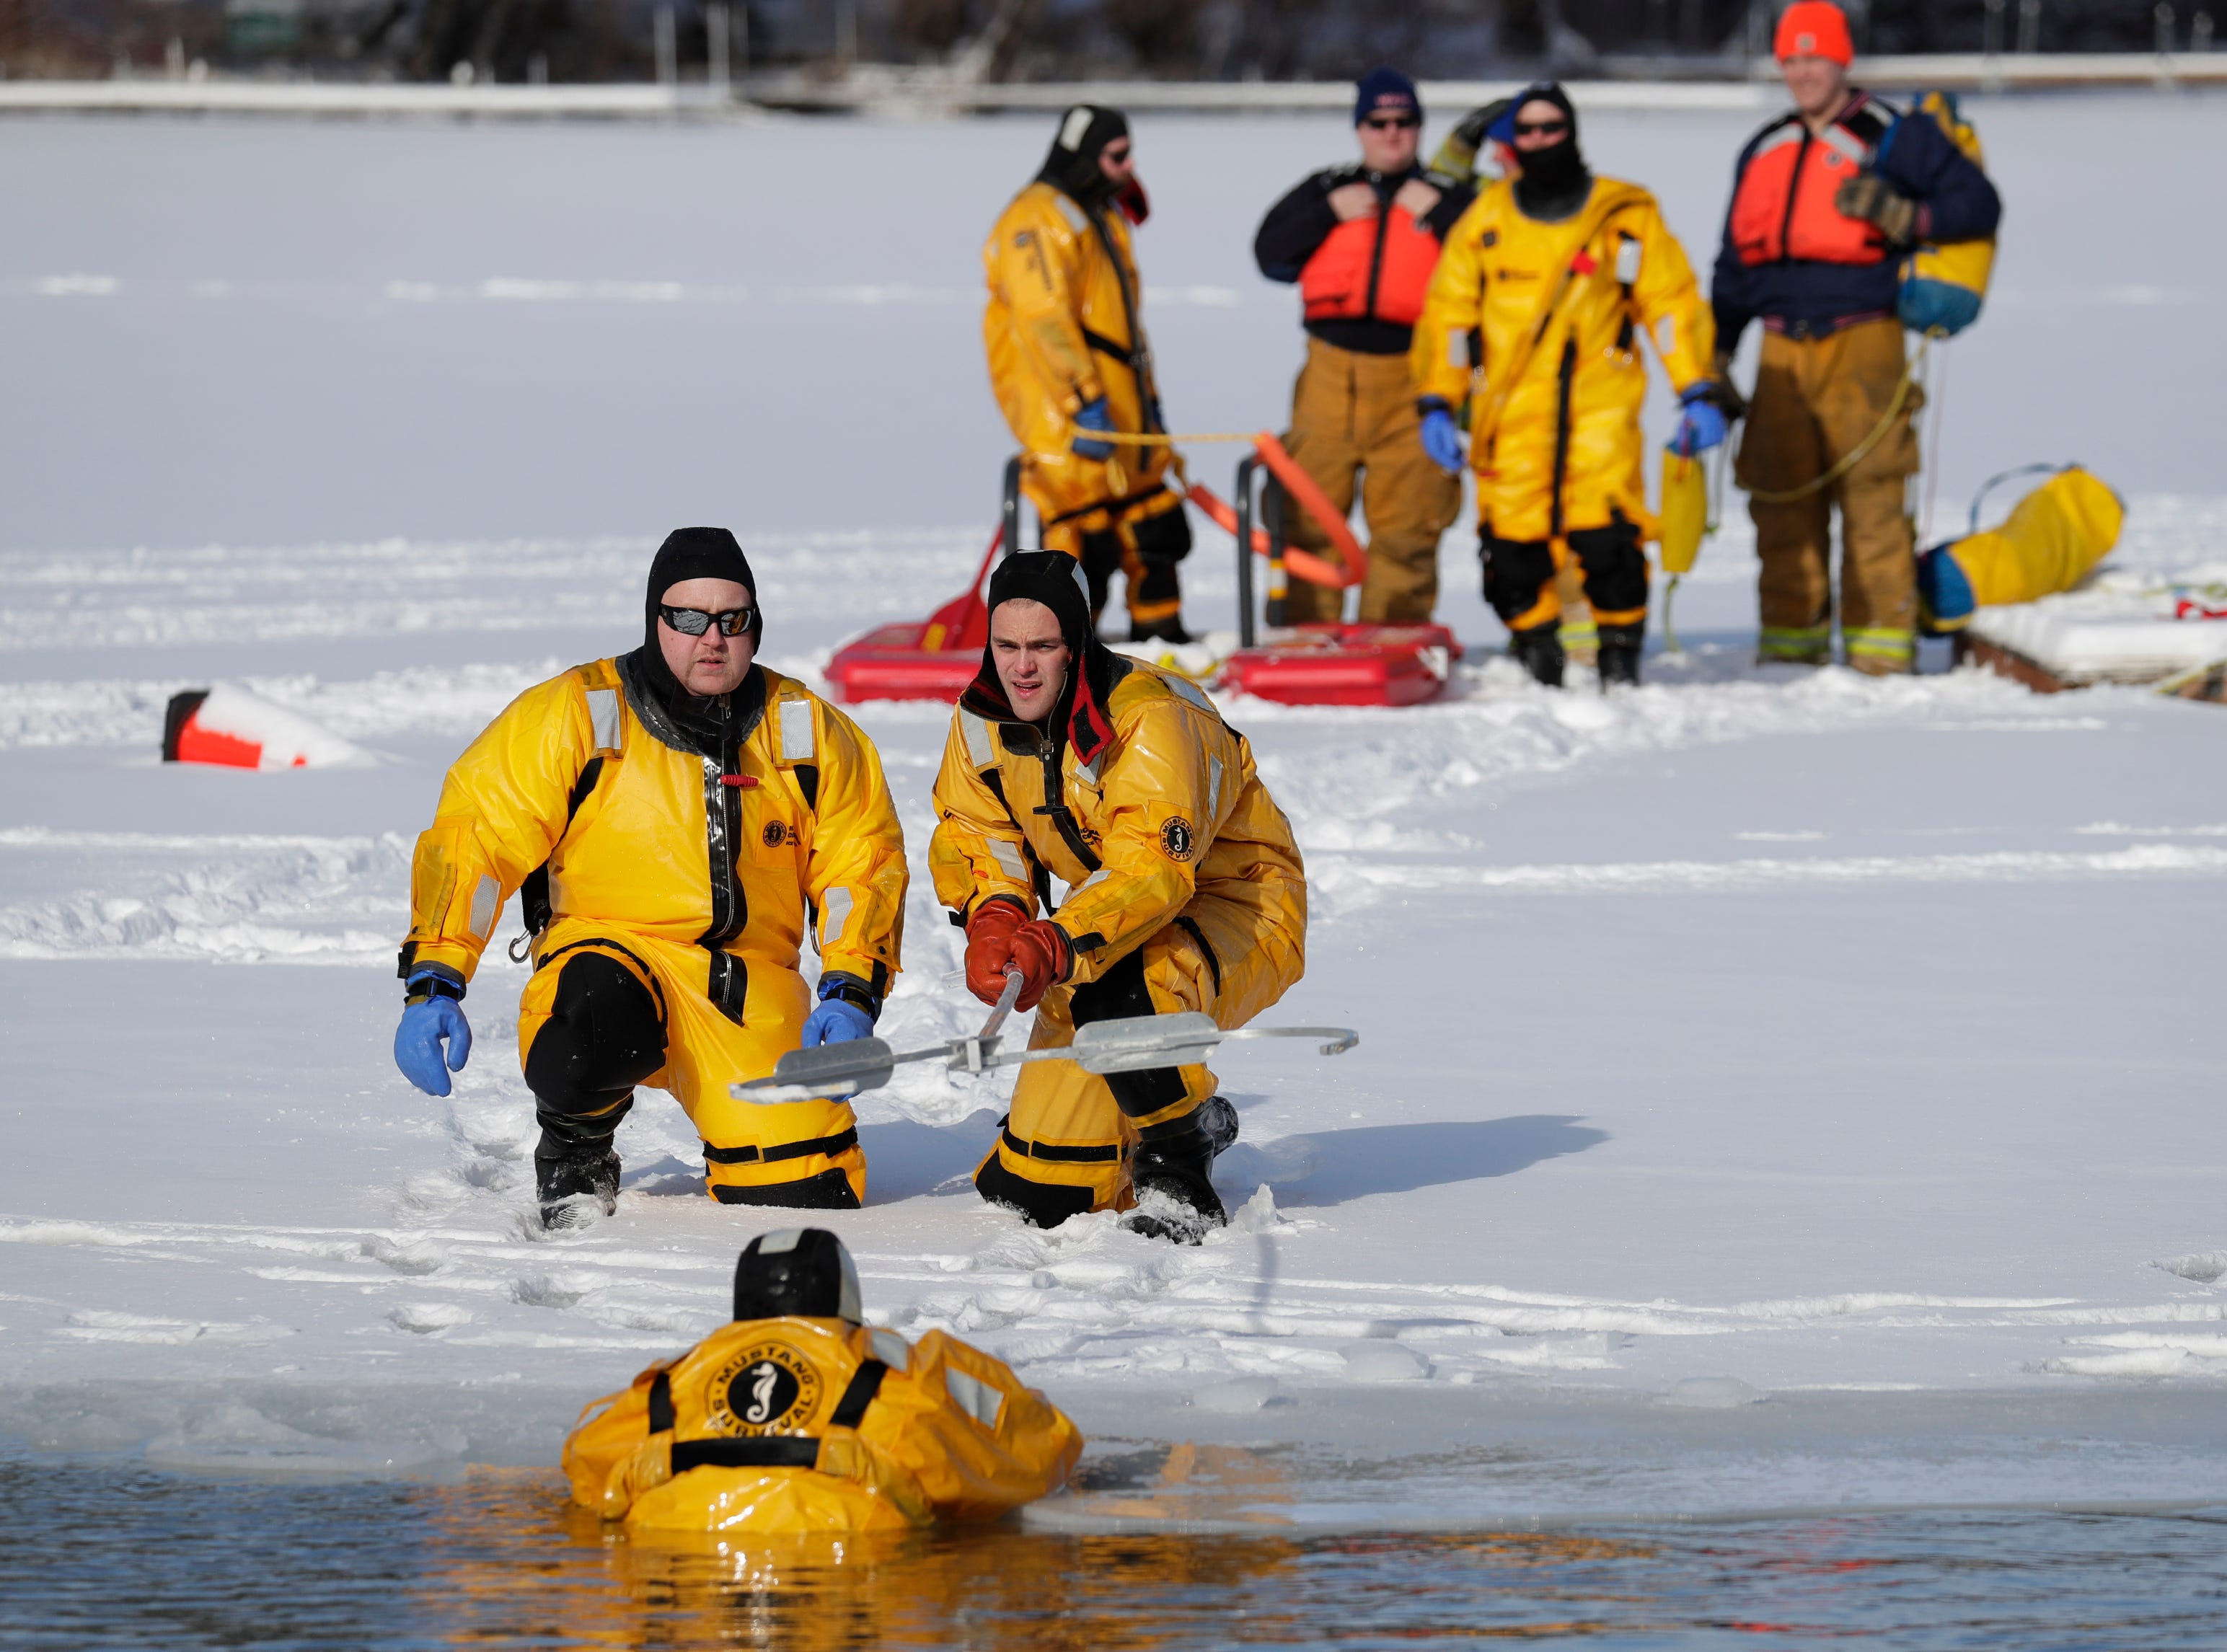 Waupaca firefighters conduct a water rescue demonstration during the Polar Bear Plunge Tuesday, January 1, 2019, at Becker Marine on Lime Kiln Lake in Waupaca, Wis. Dan Powers/USA TODAY NETWORK-Wisconsin